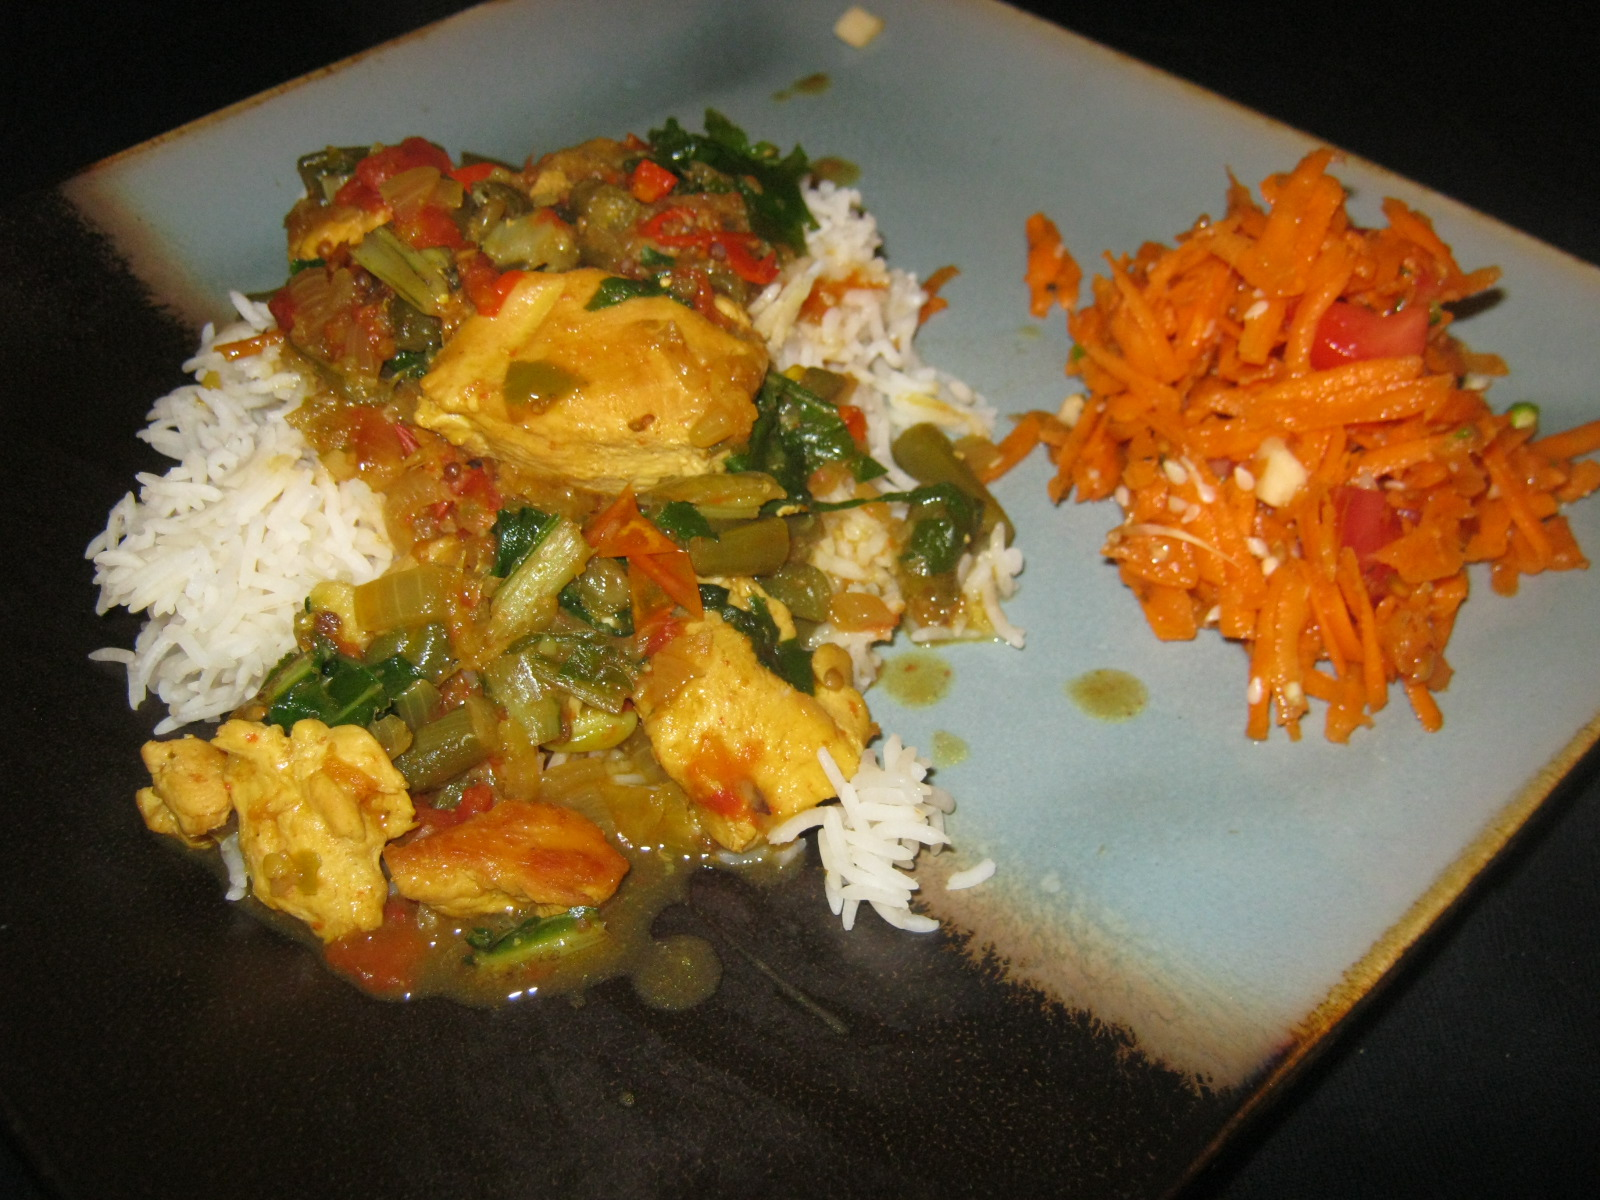 Bombay chicken curry on a plate